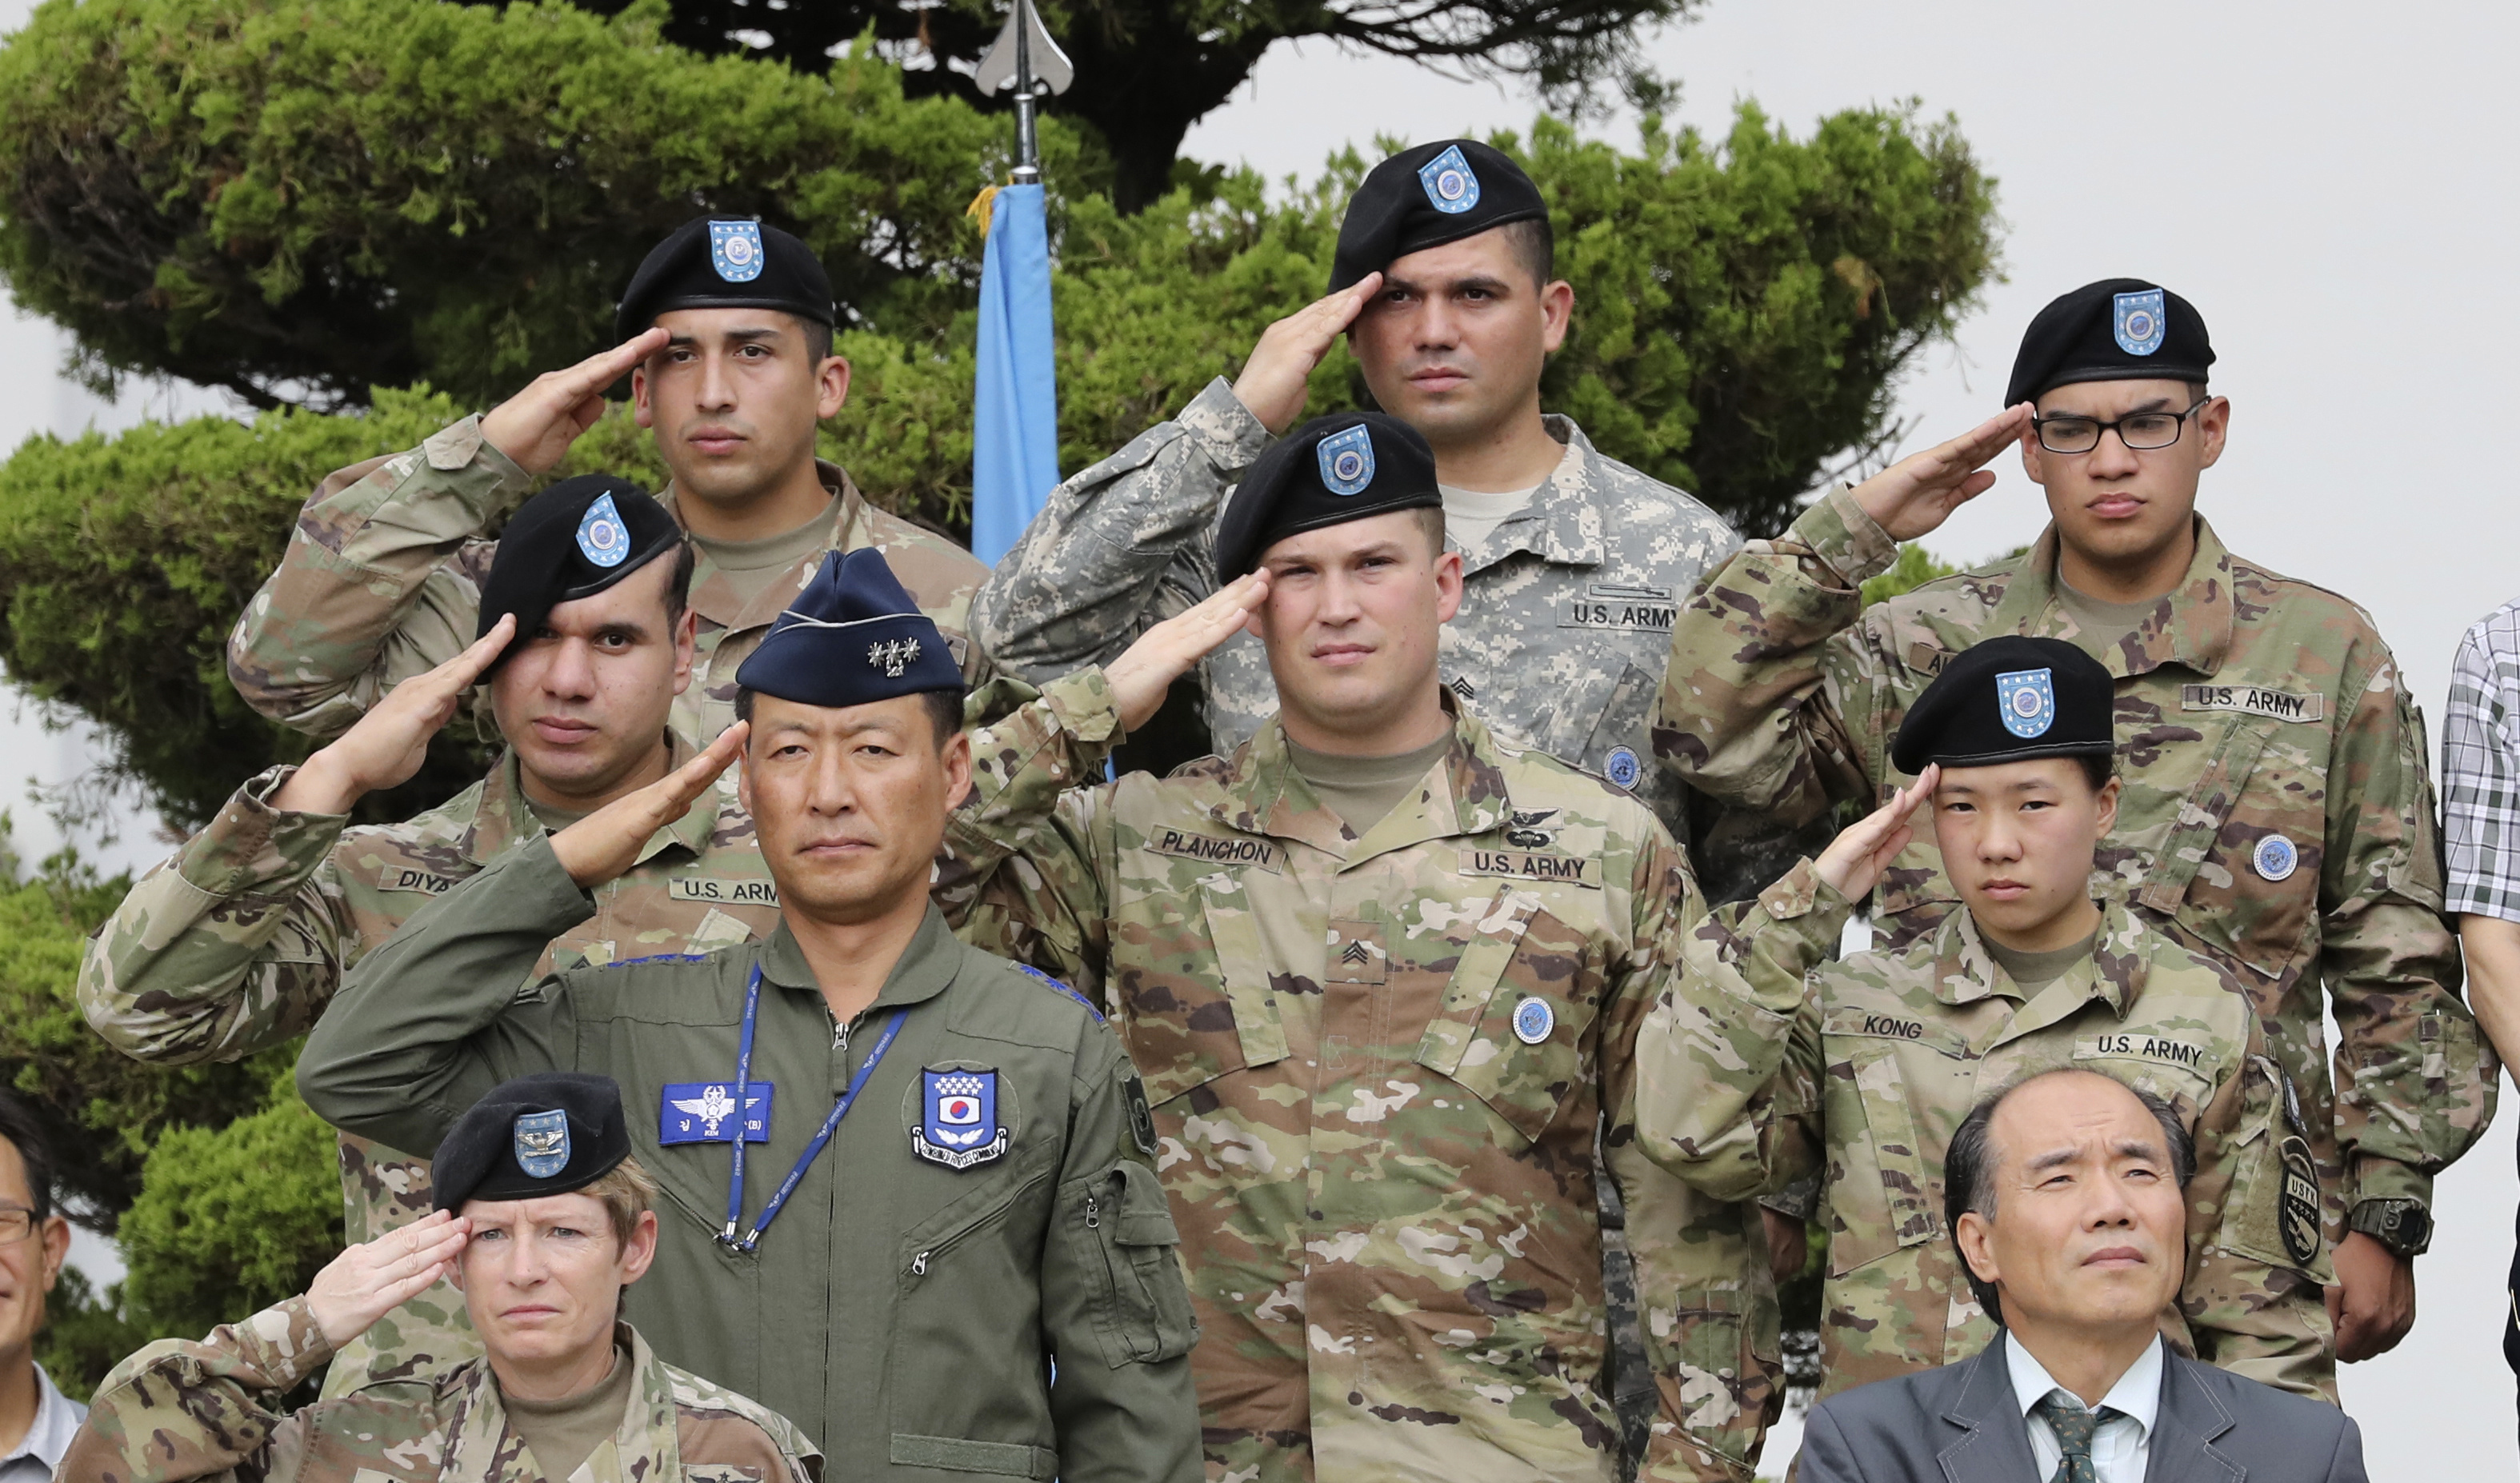 U.S. and South Korean soldiers salute during a change of command and responsibility ceremony at Yongsan Garrison, a U.S. military base, in Seoul, South Korea,  Aug. 11, 2017.